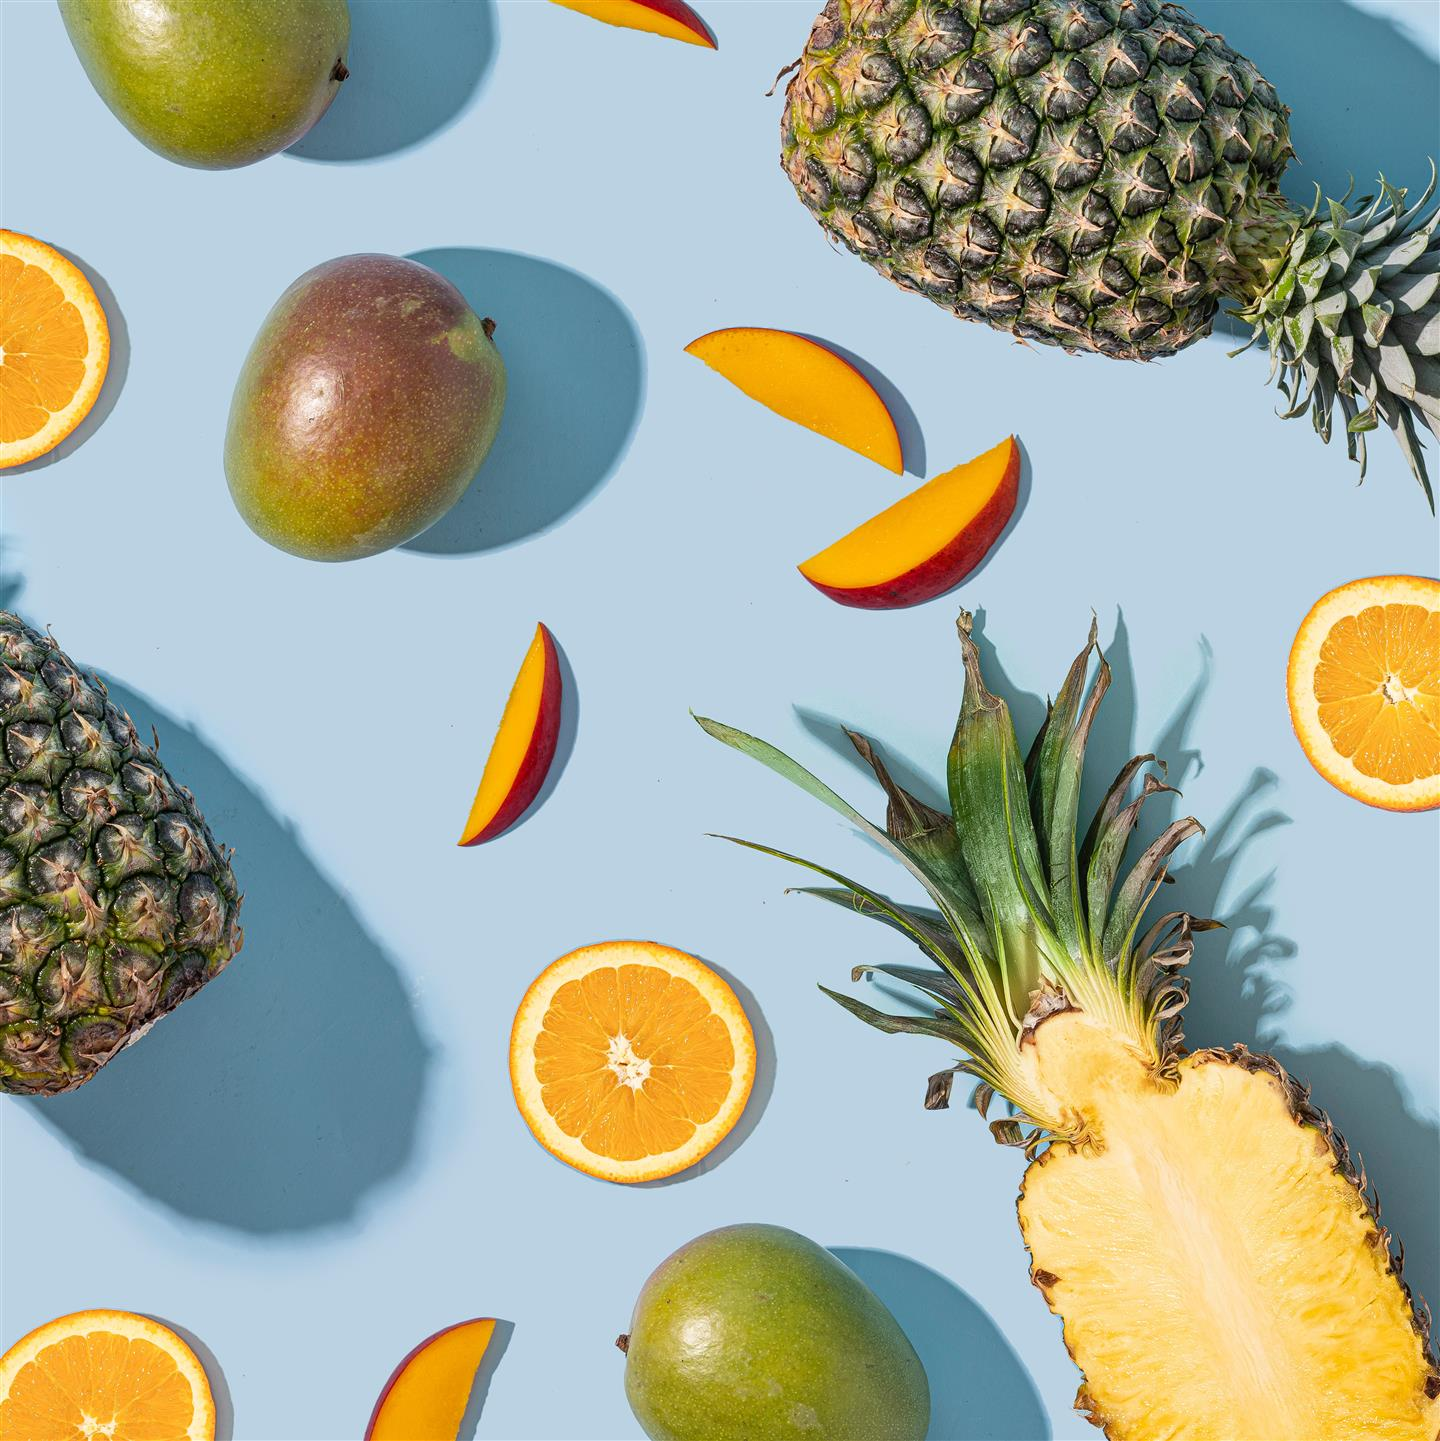 cut up mangos/oranges and pineapple background